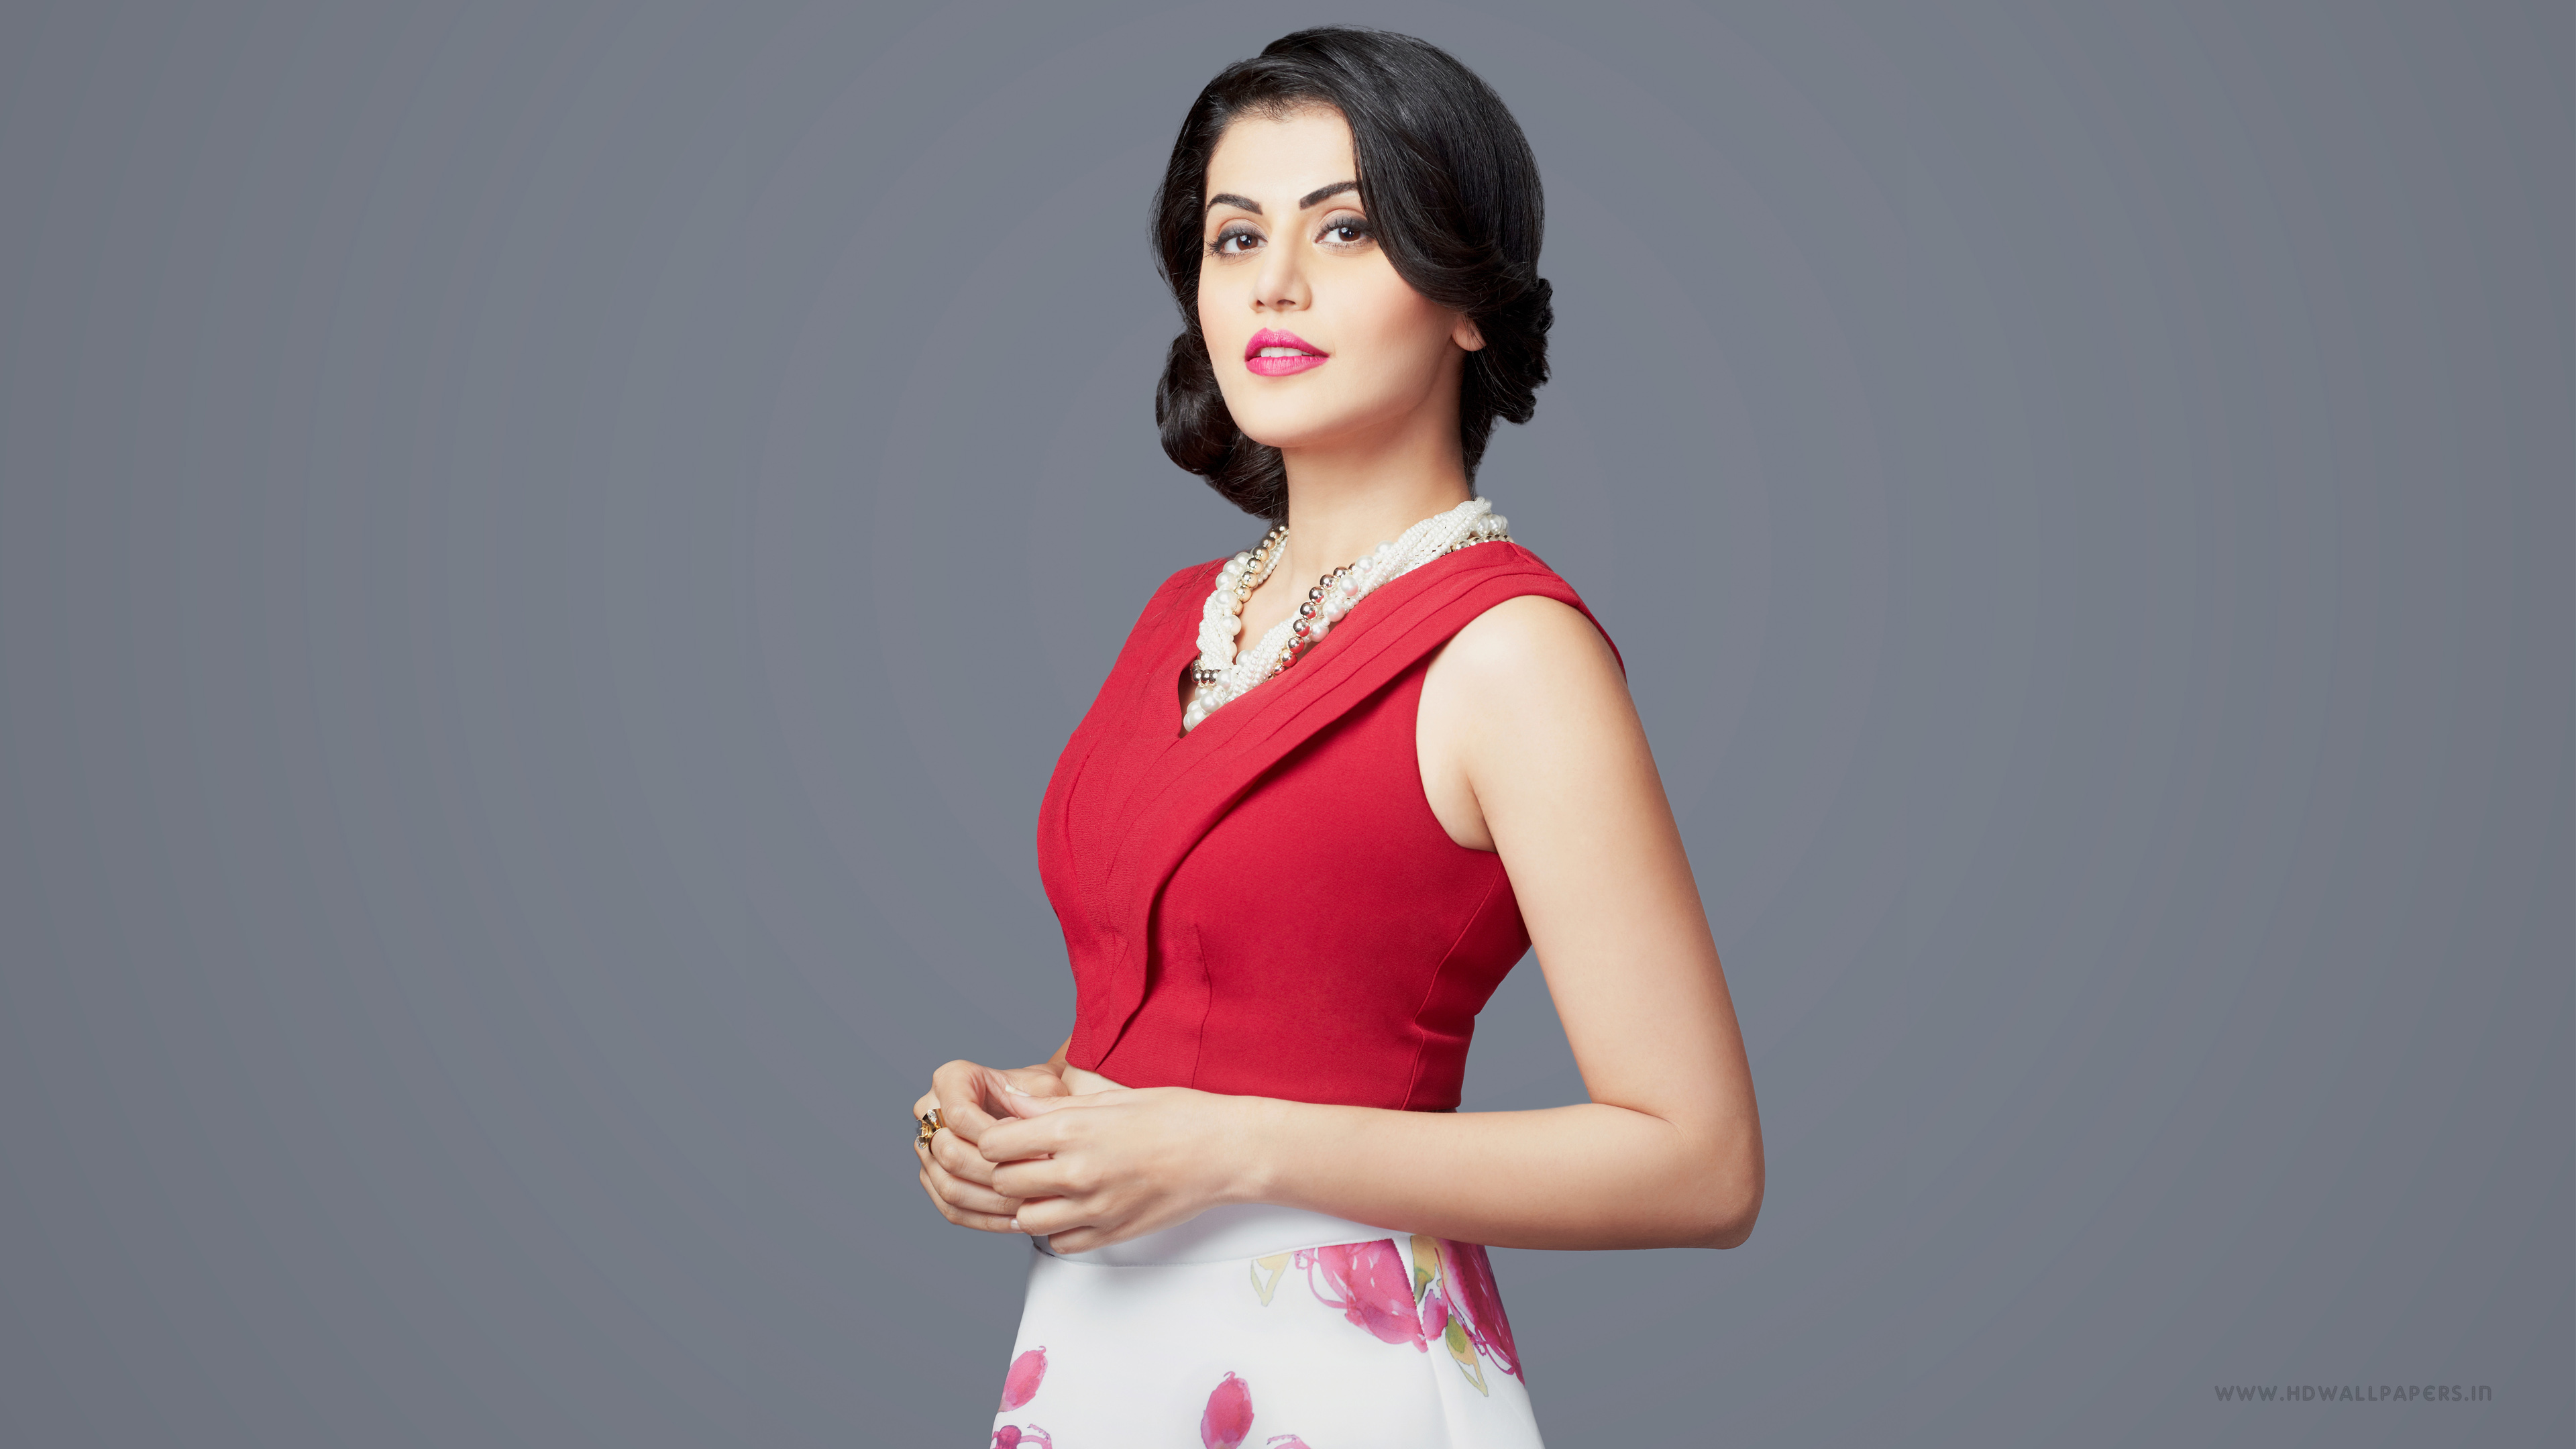 3840x2160 - Tapsee pannu Wallpapers 2